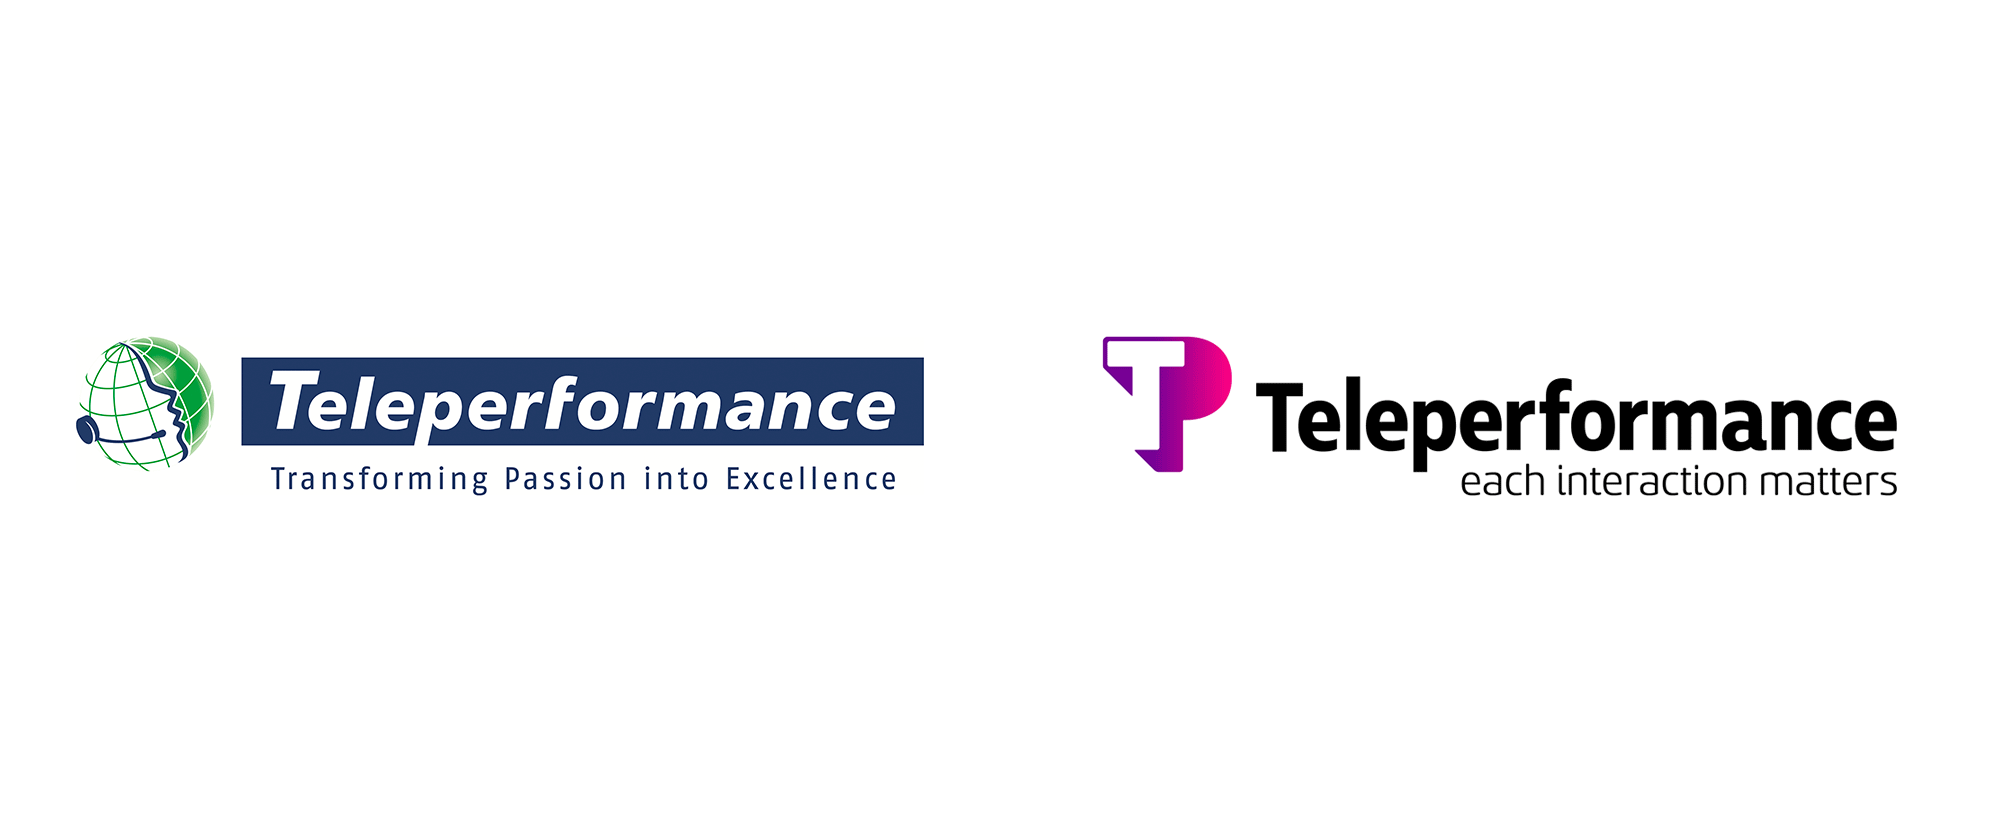 Brand New: New Logo and Identity for Teleperformance by Ana Couto.